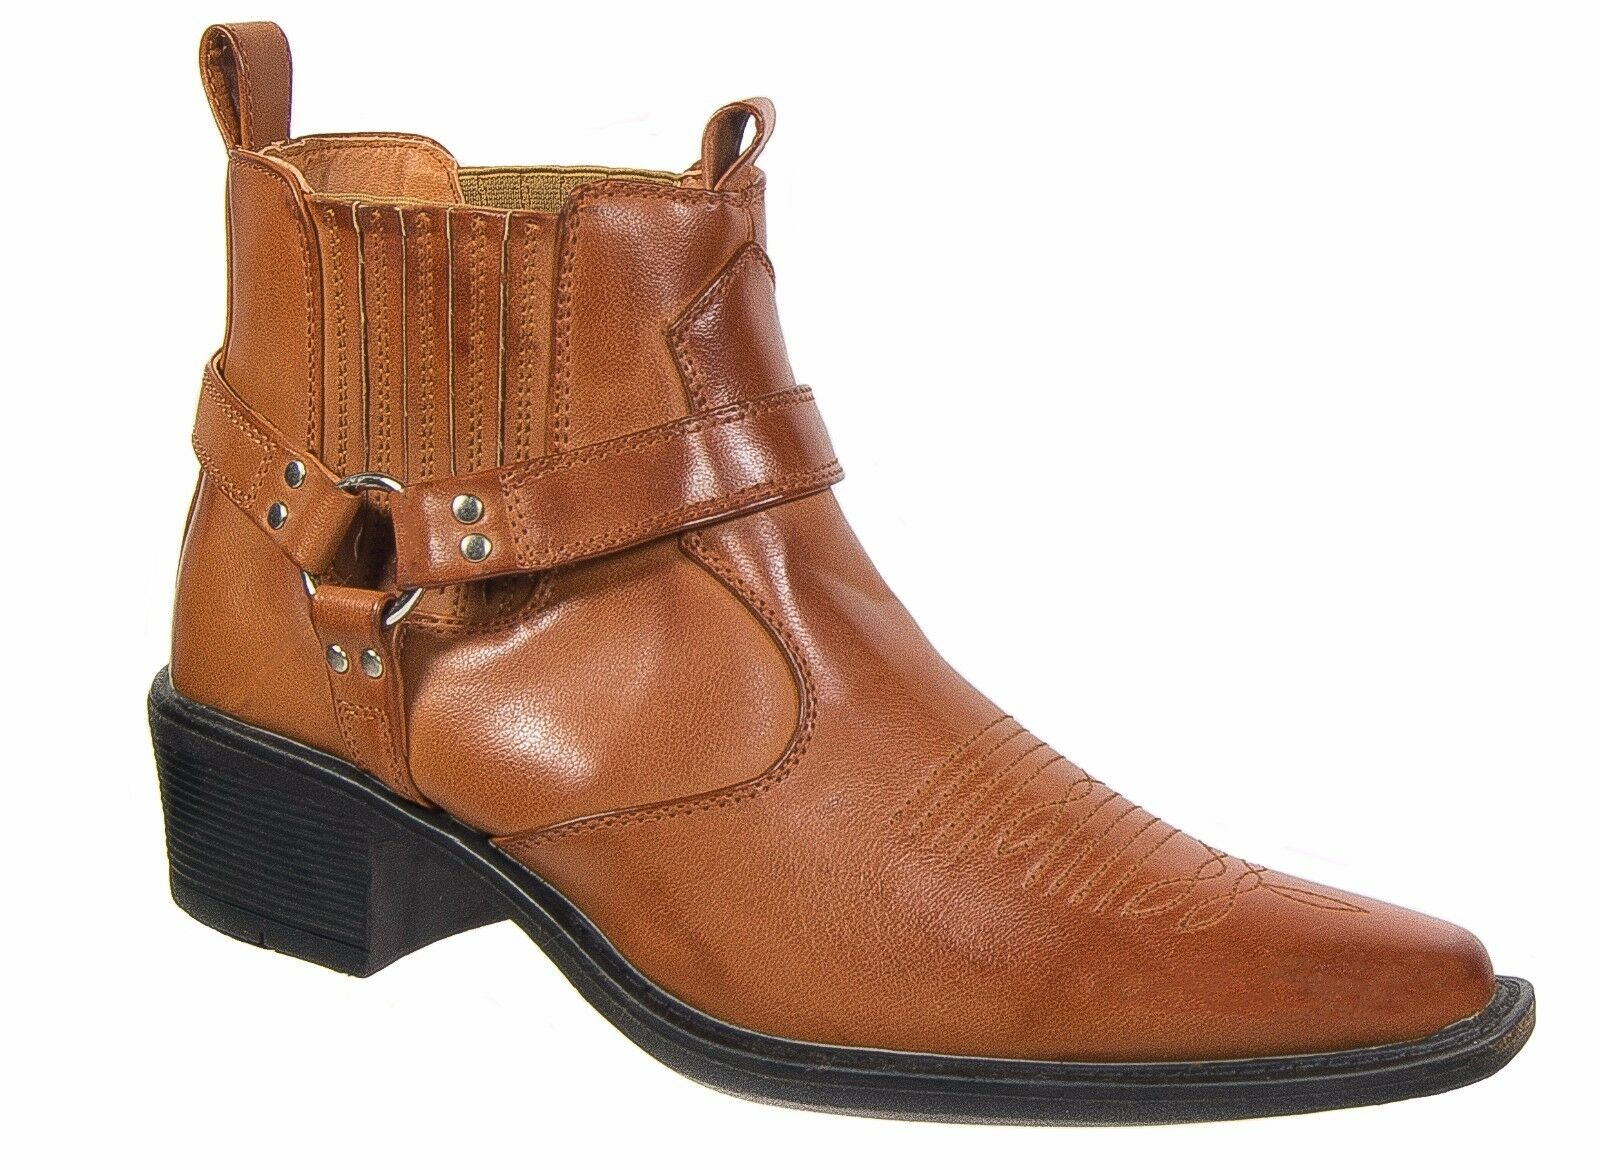 Mens US Brass Cowboy Ankle Boots Tan Brown Harness Sizes 7 to 12